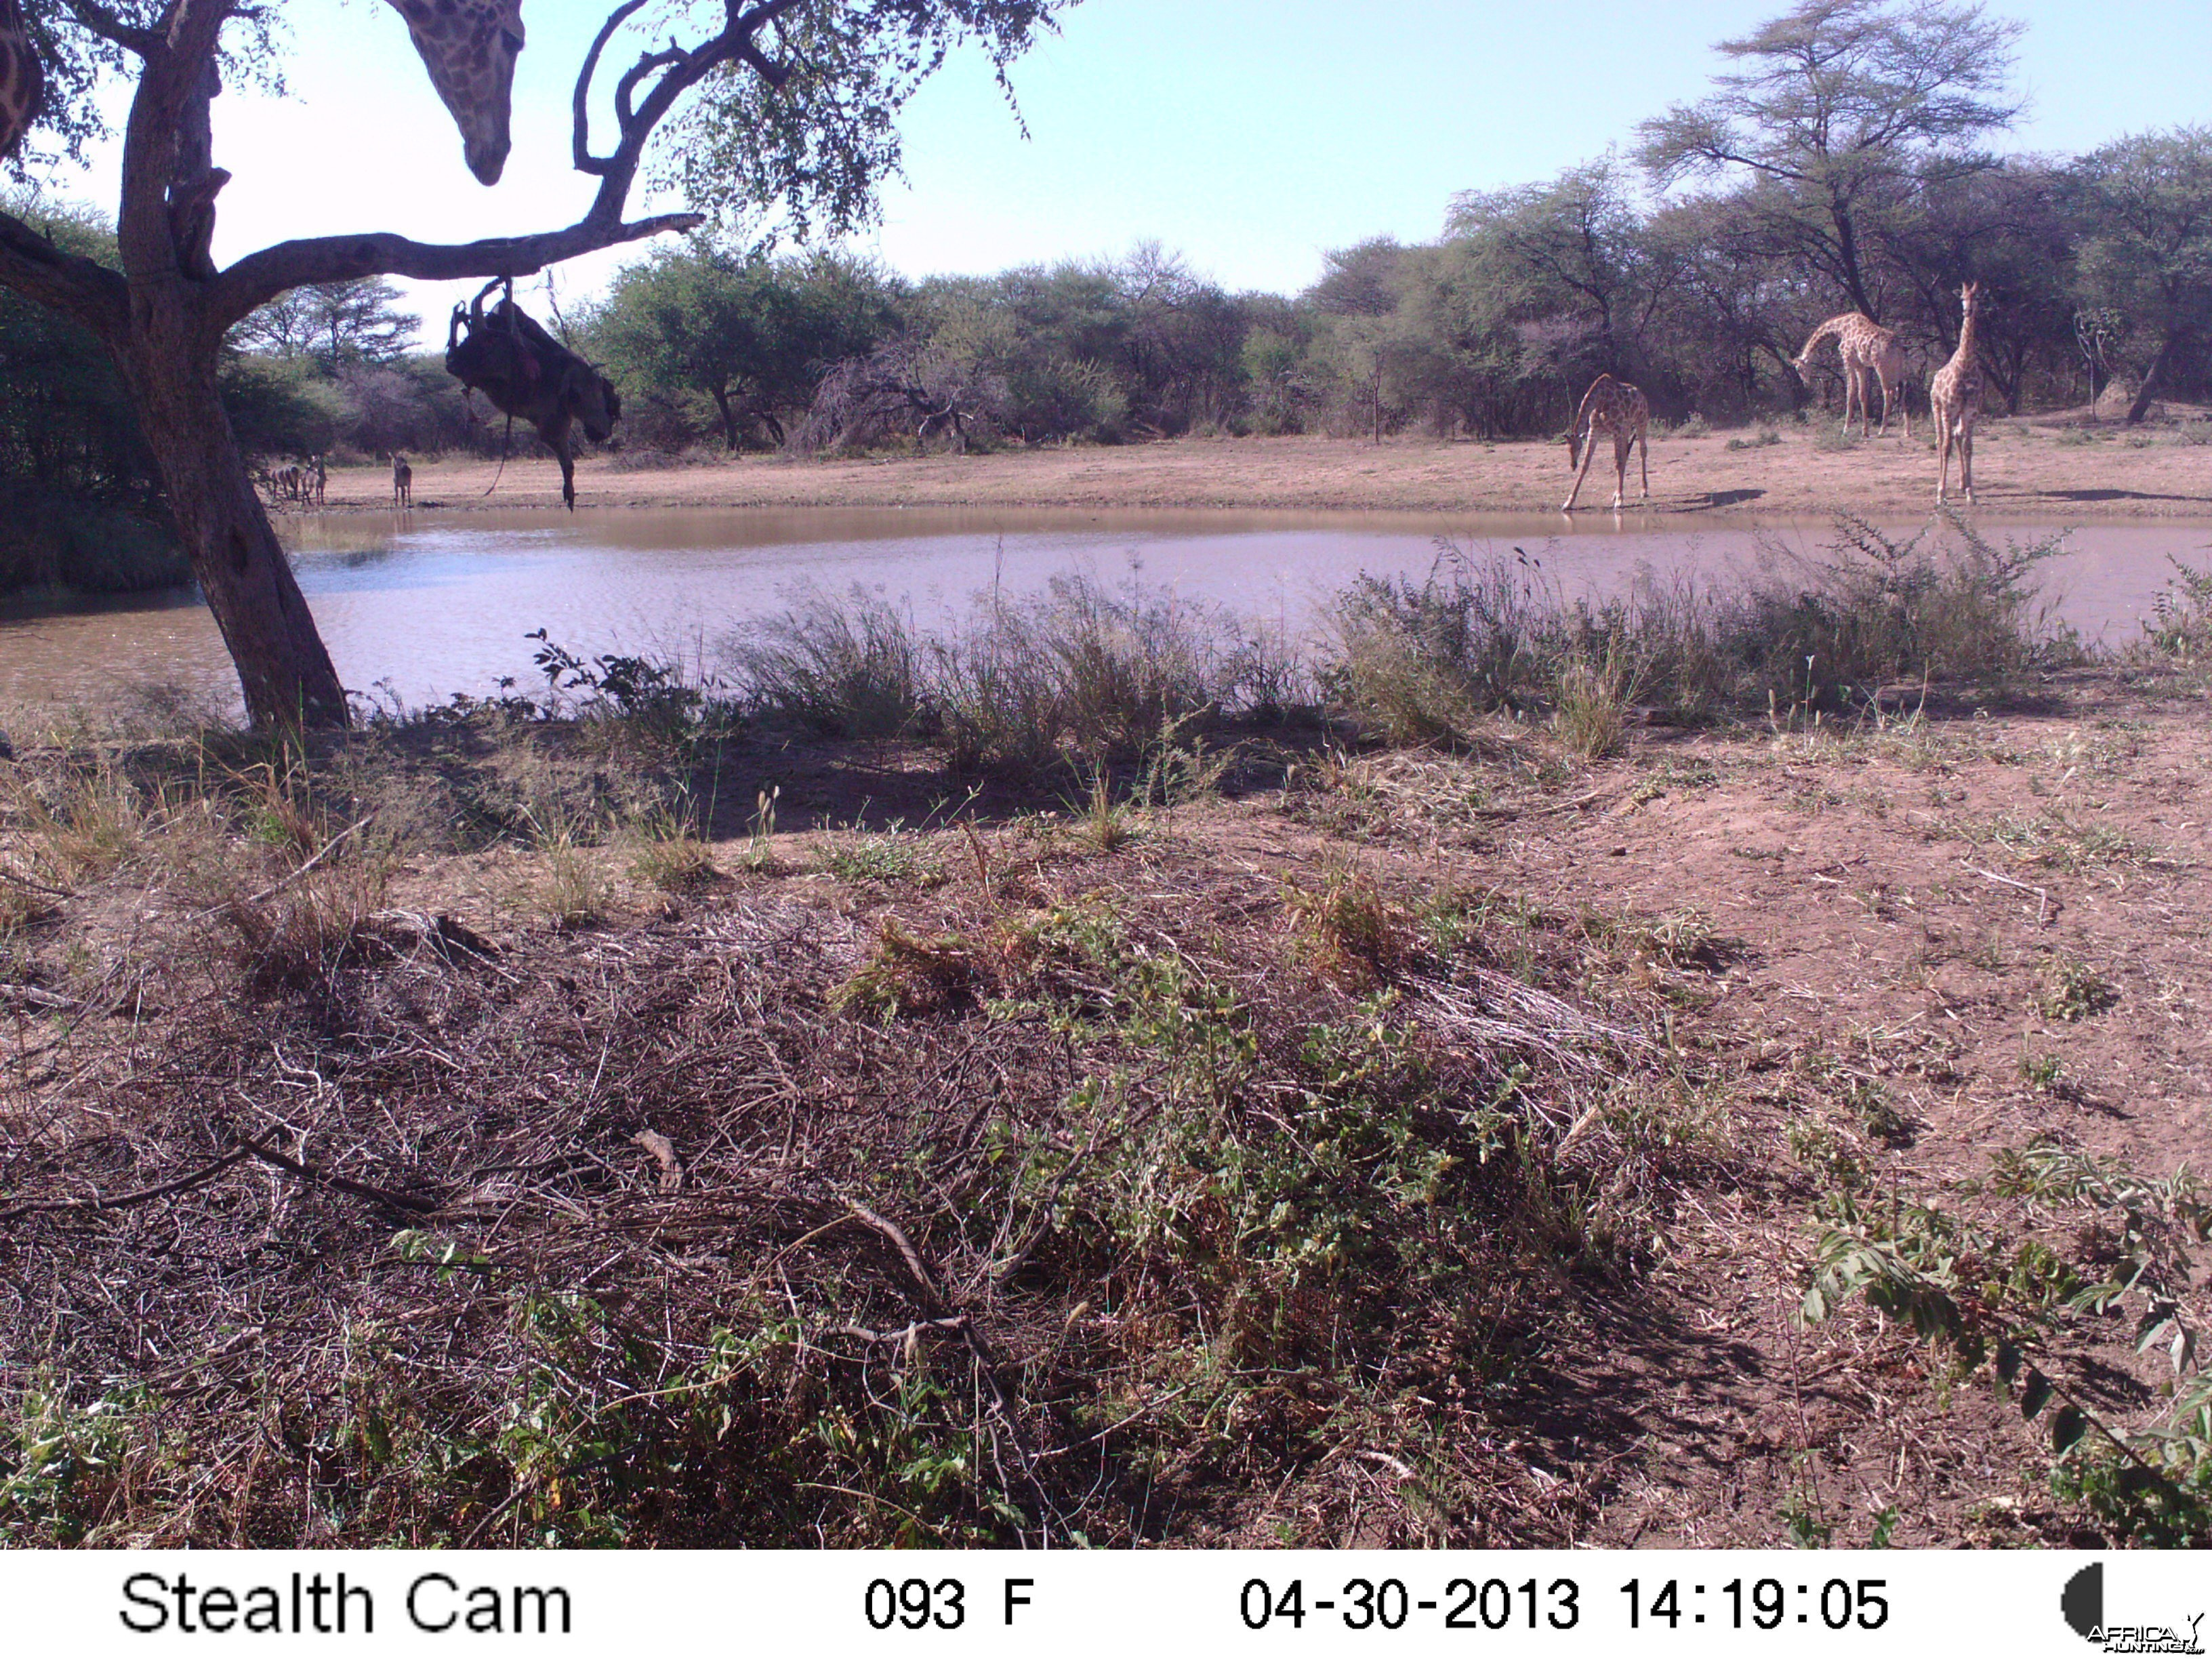 Giraffe Trail Camera